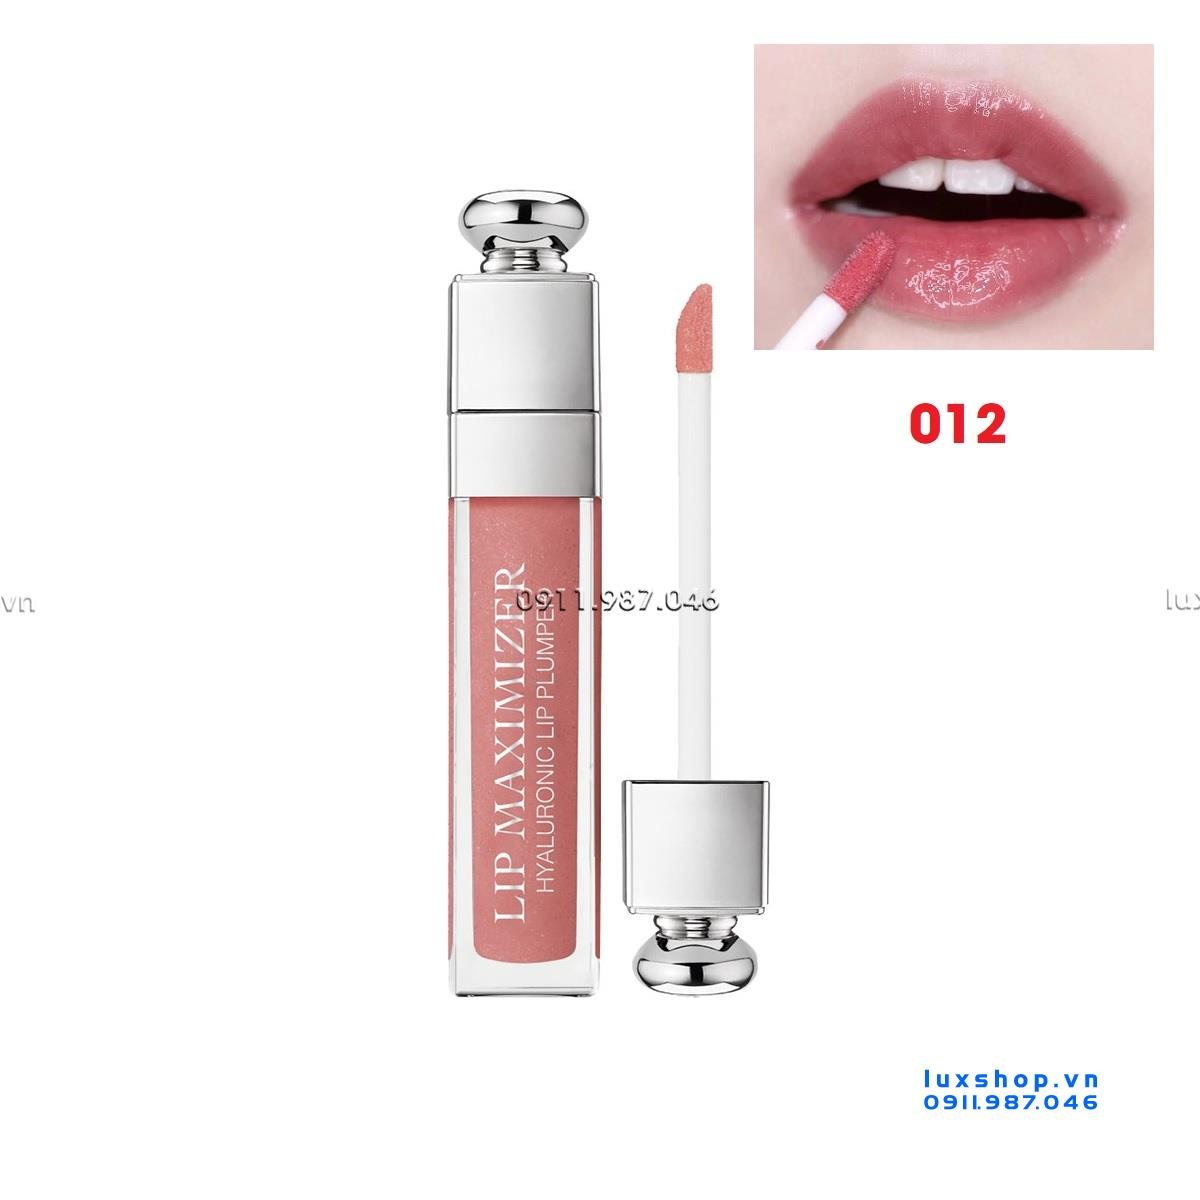 son-duong-dior-collagen-addict-lip-maximizer-012-rosewood-chinh-hang-phap-pn02035